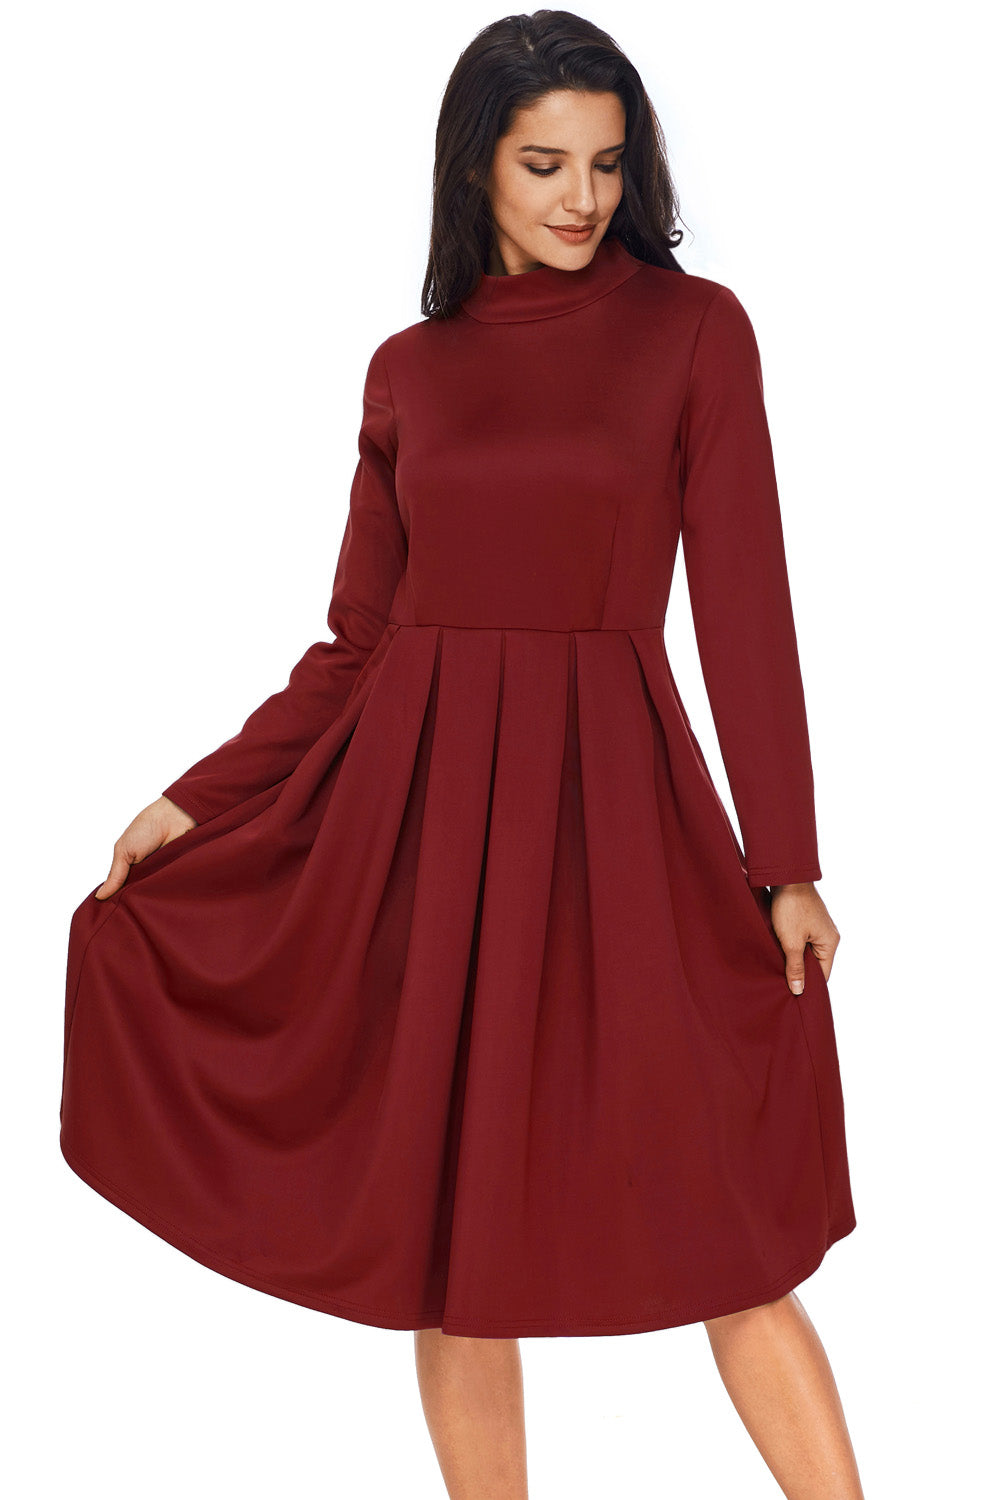 Chicloth Burgundy Pocket Style High Neck Skater Dress